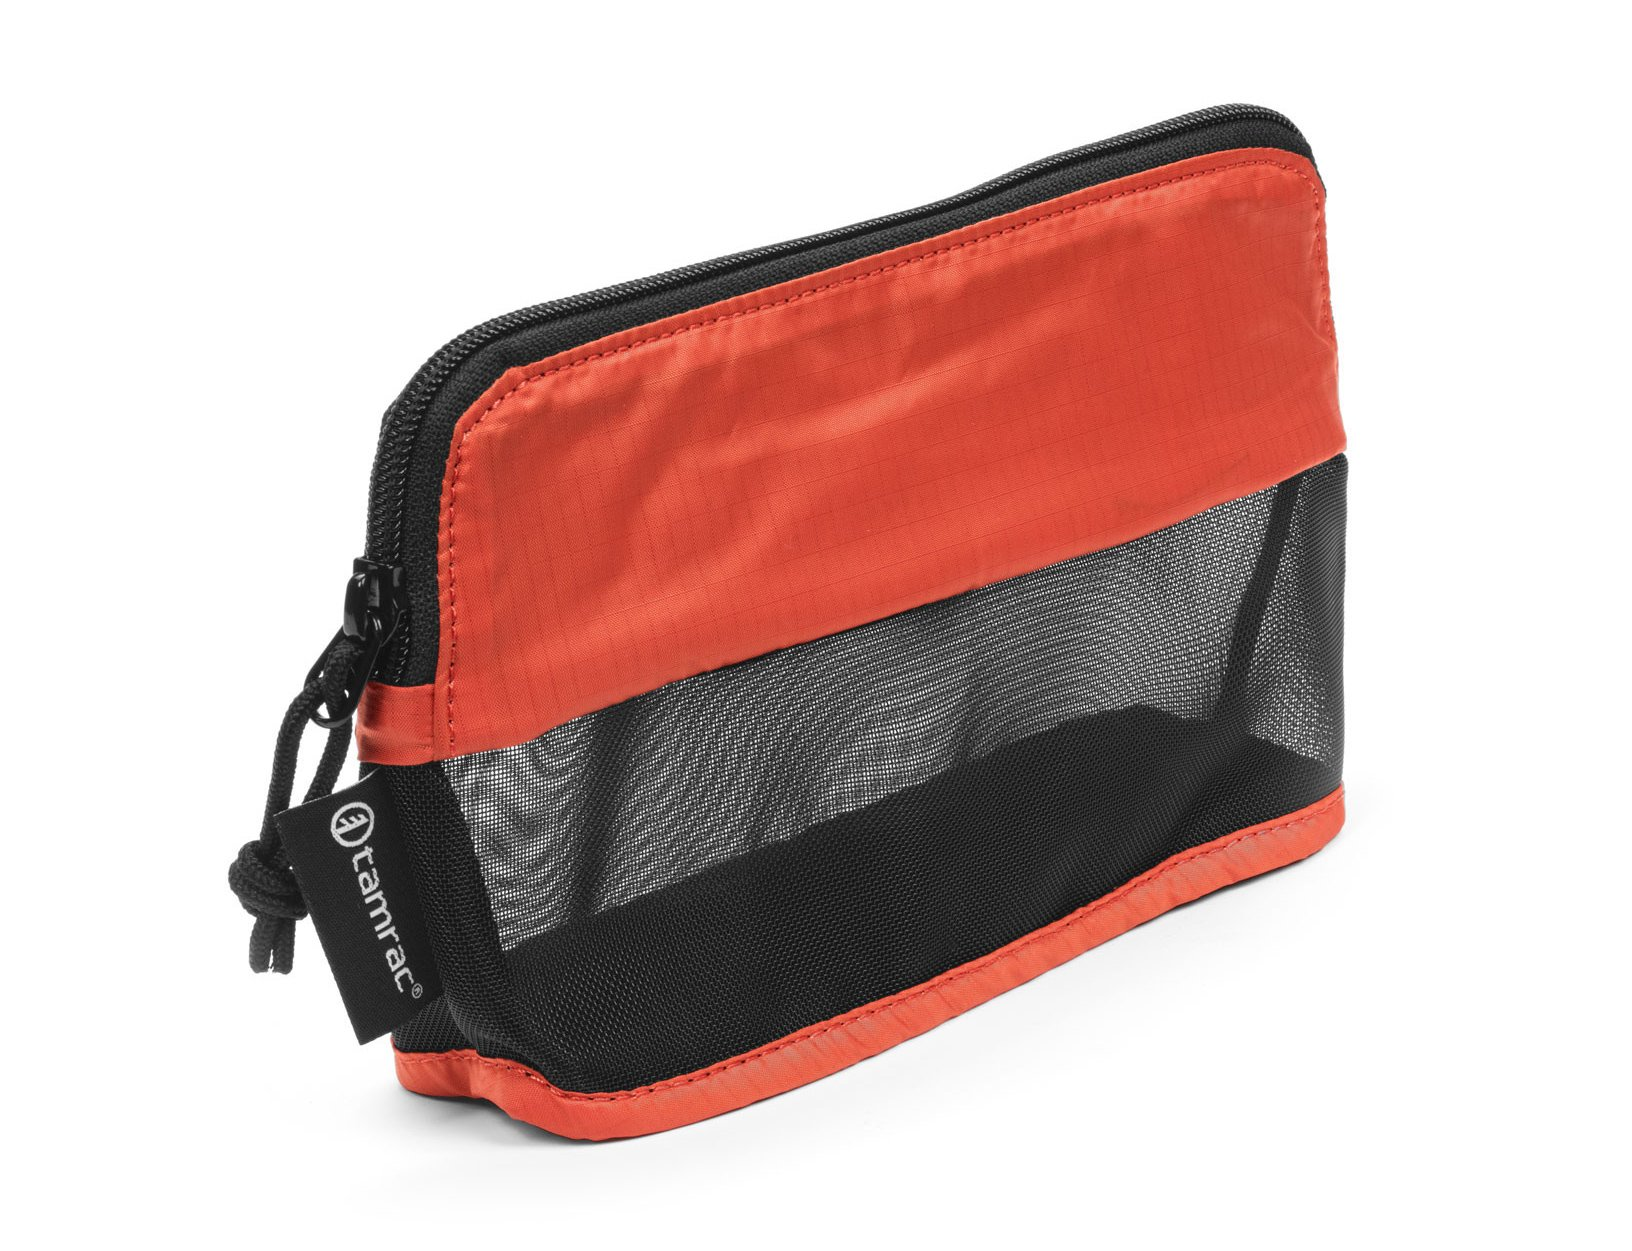 Tamrac Goblin Accessory Pouch 1.7 Pouch case Black,Orange - equipment cases (Pouch case, Nylon, Bla